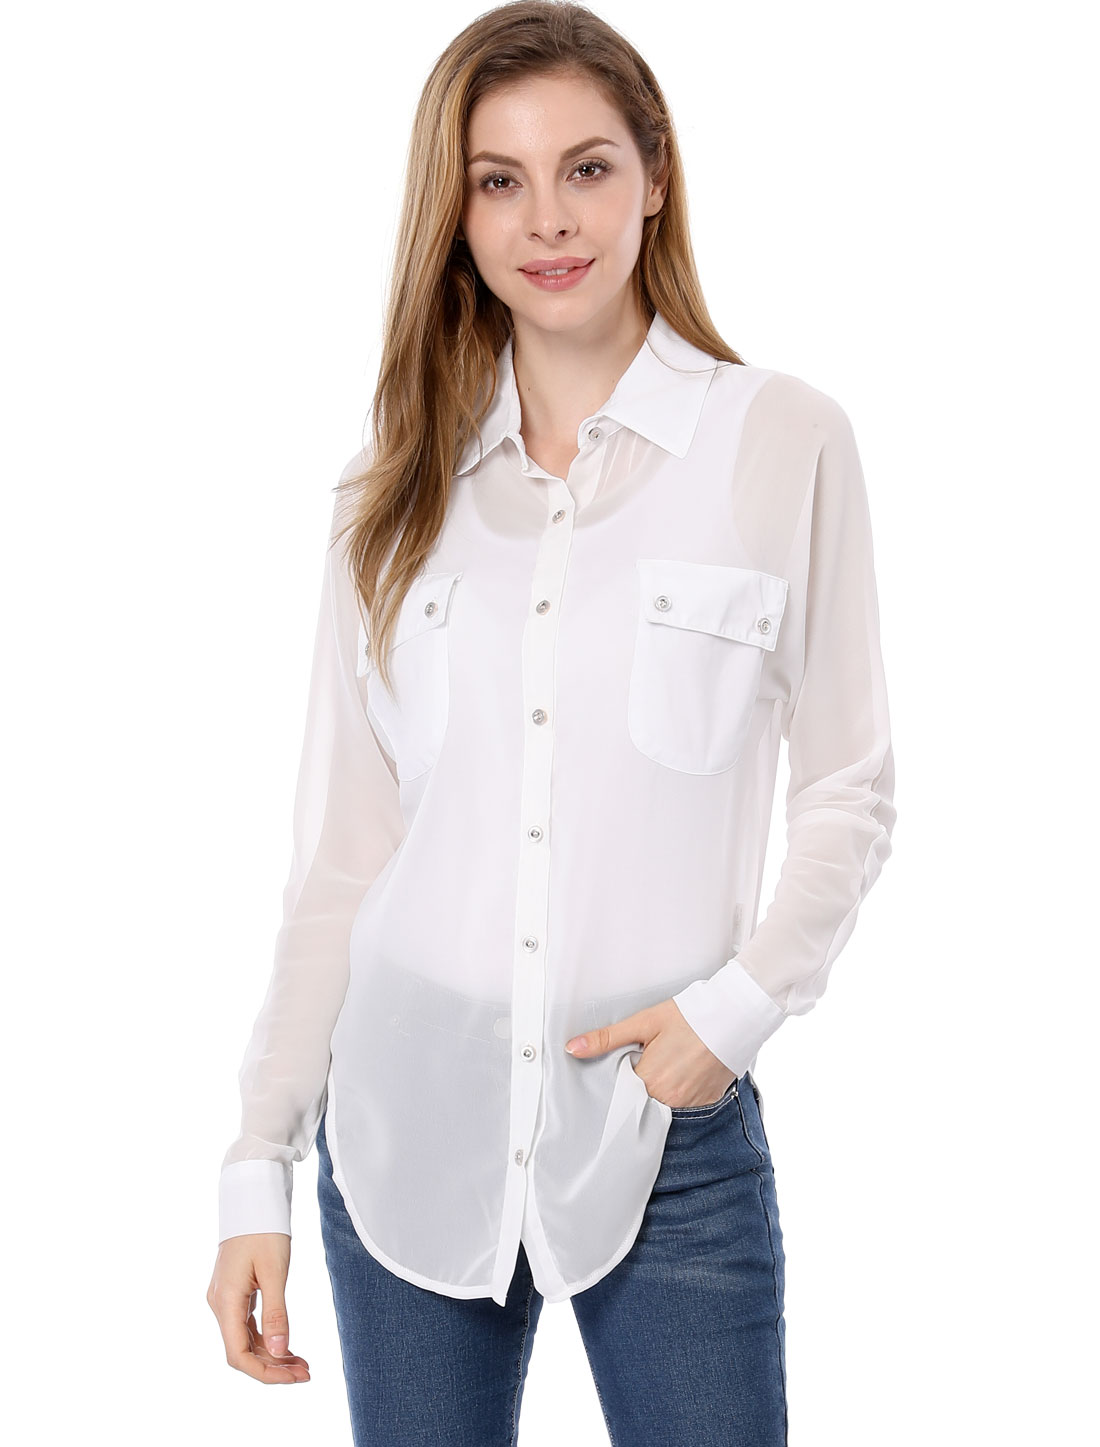 Women Casual Pockets Front Long Dolman Sleeves Tunic Chiffon Top Shirt White L